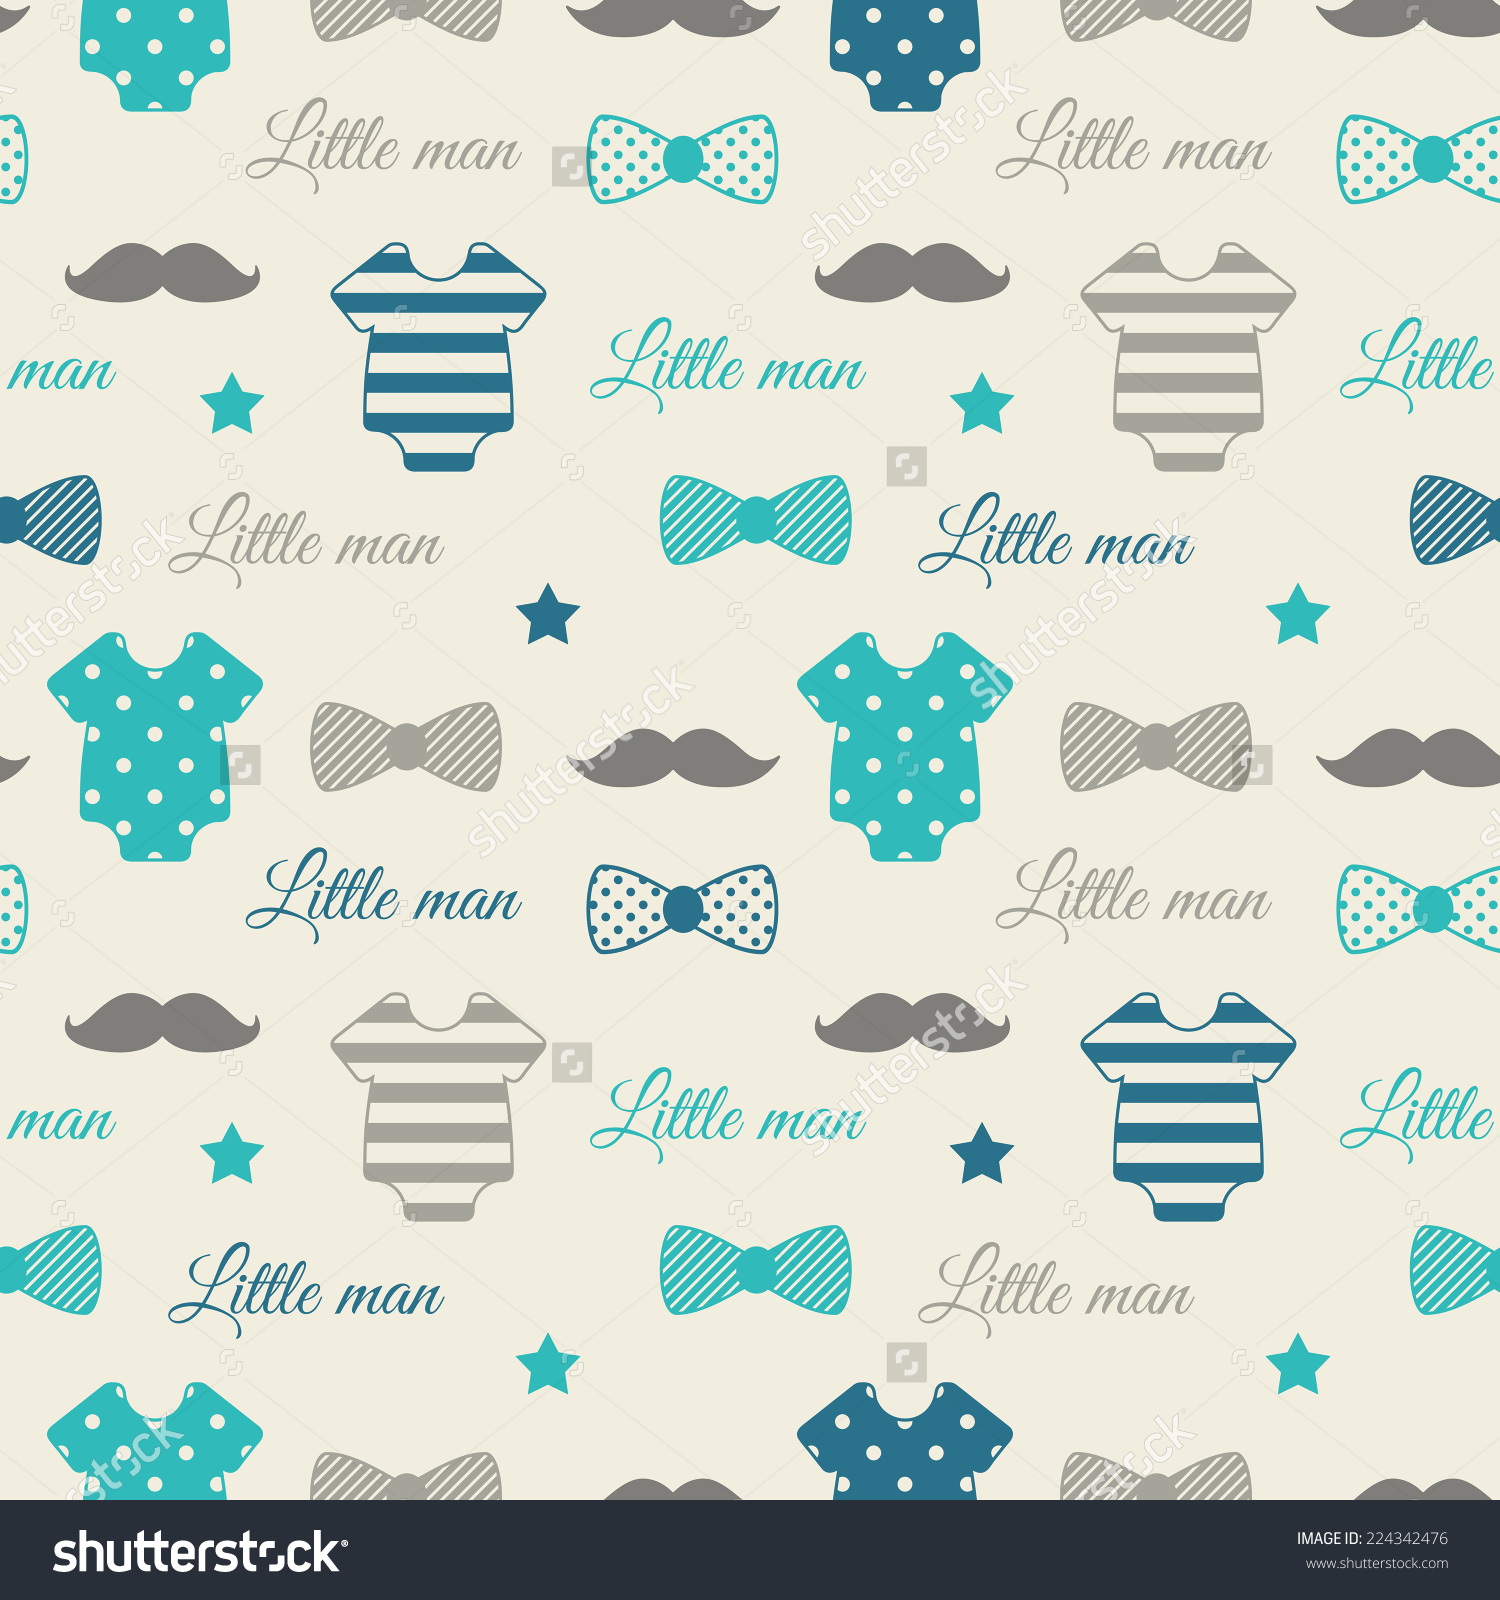 Image Gallery of Little Man Baby Shower Clip Art.